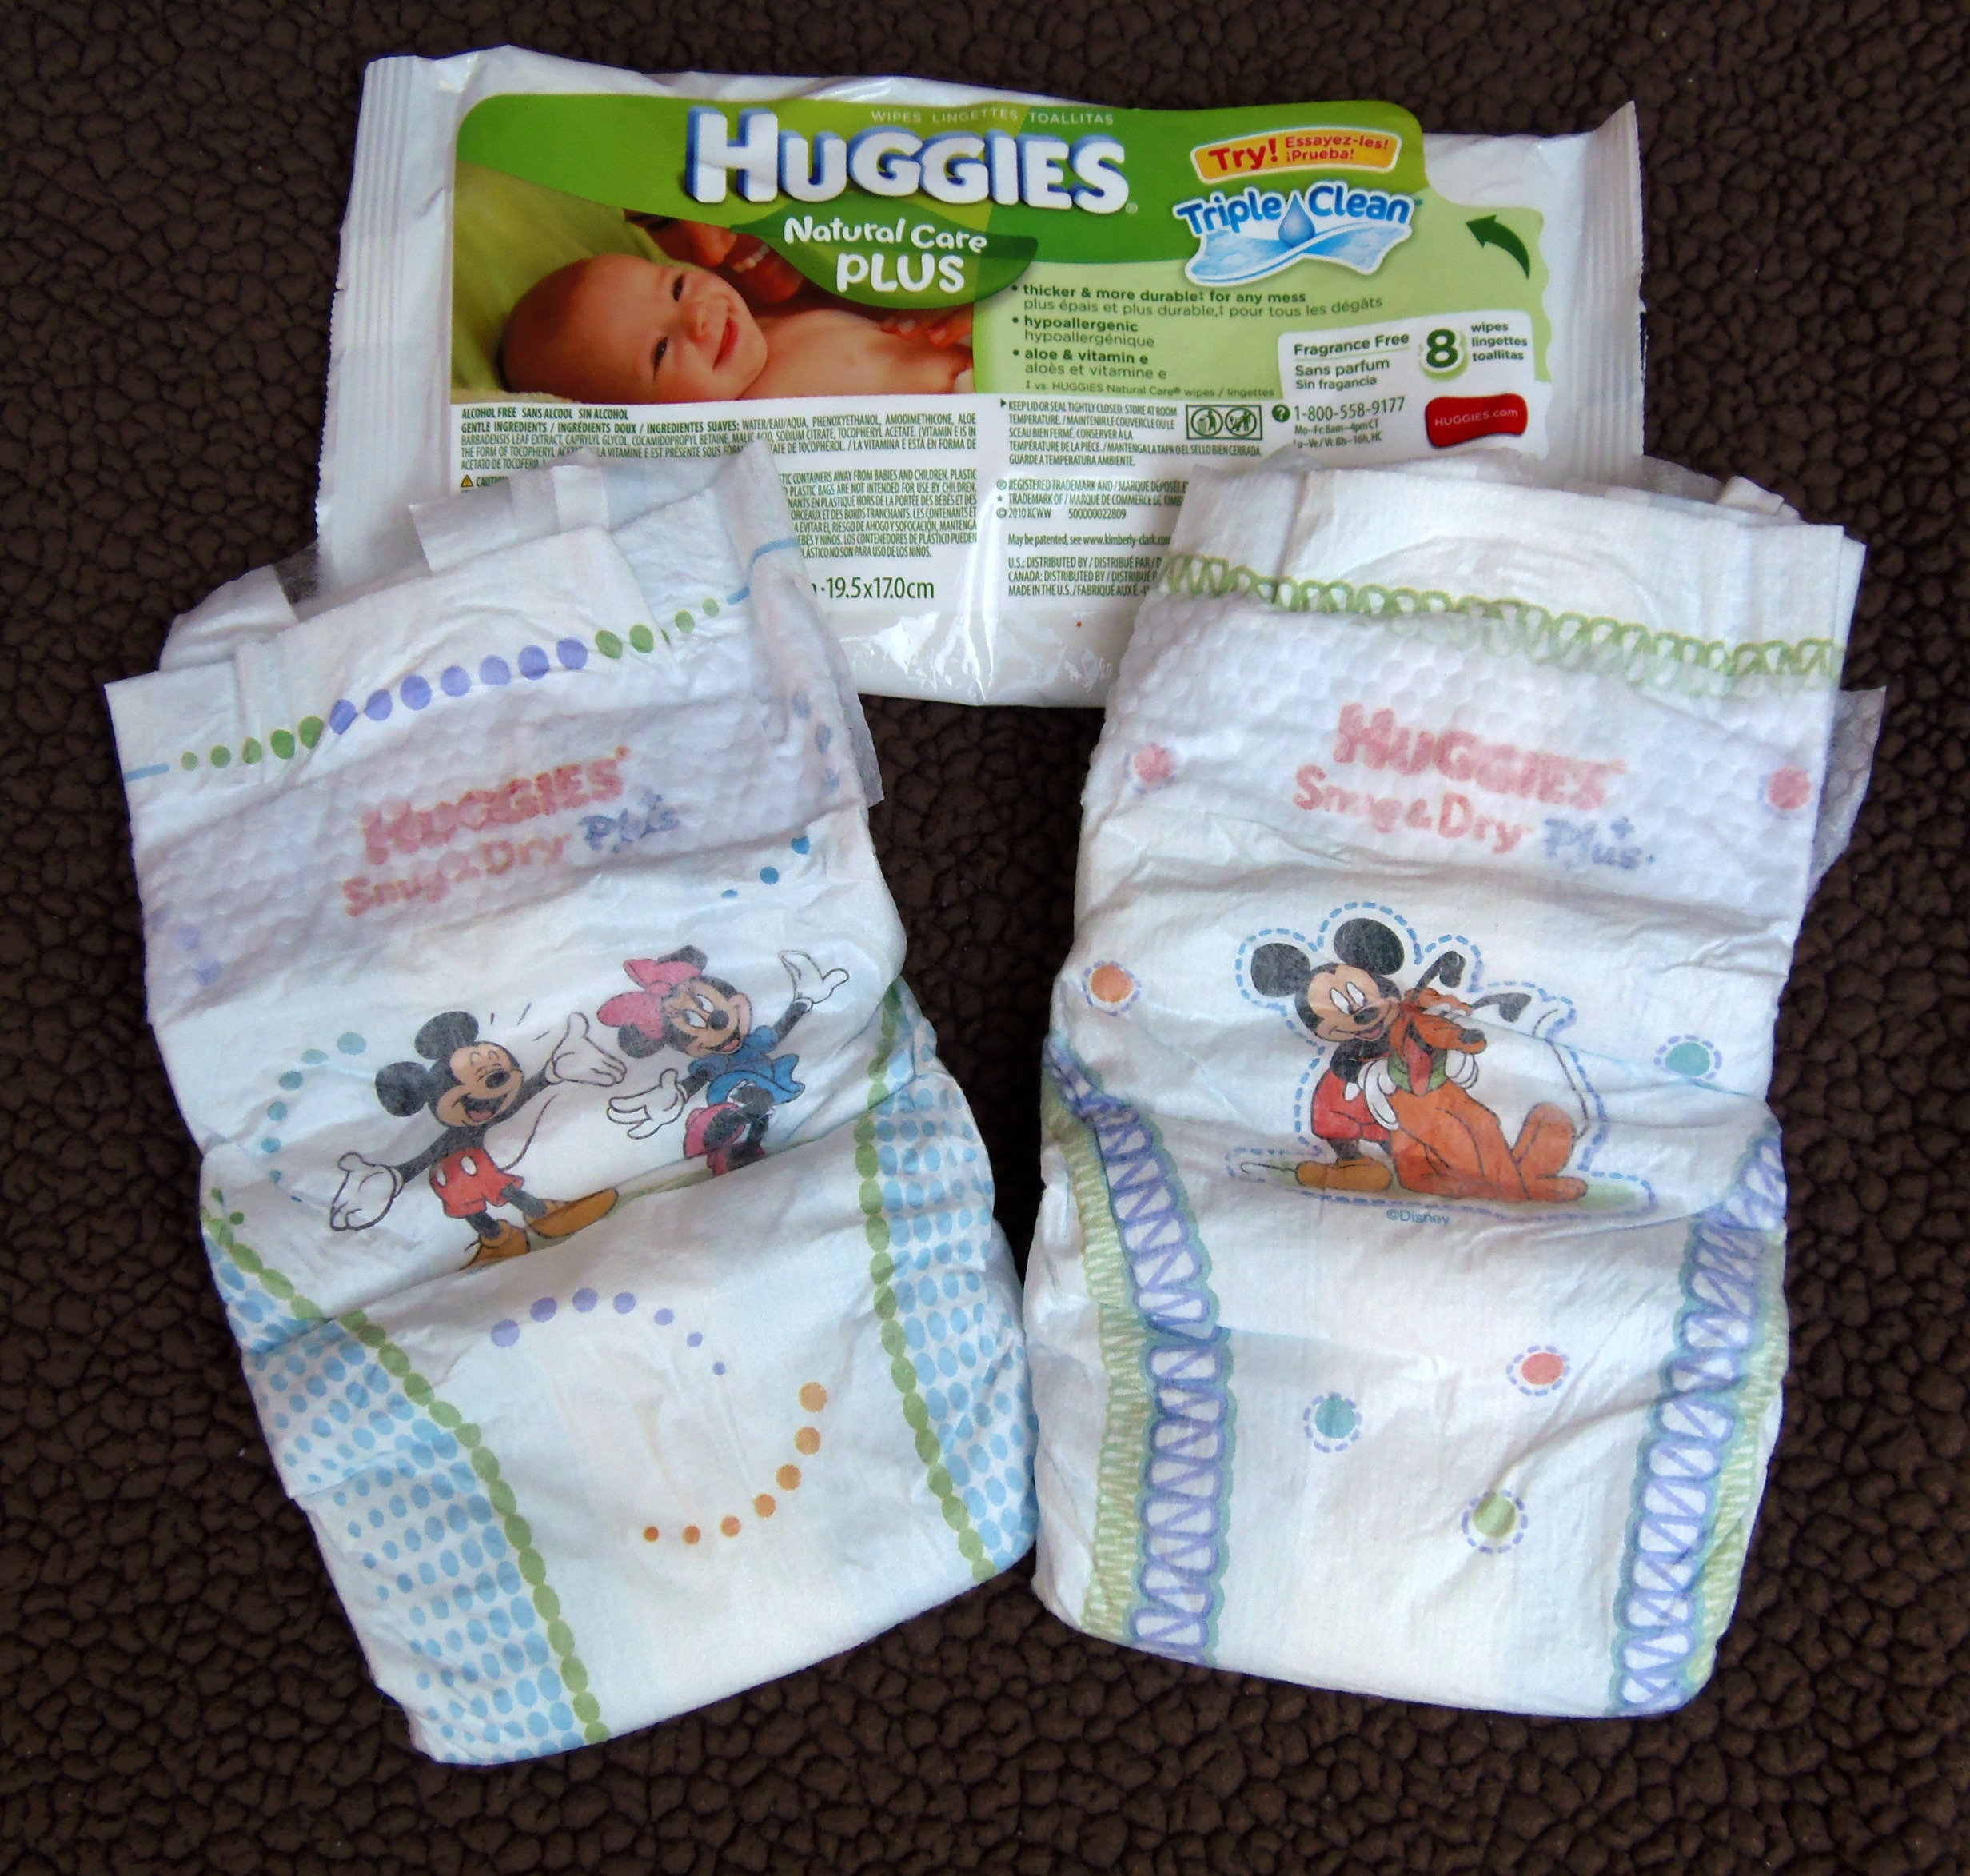 Calling All Costco Moms and Dads! Stock up on Huggies Plus!